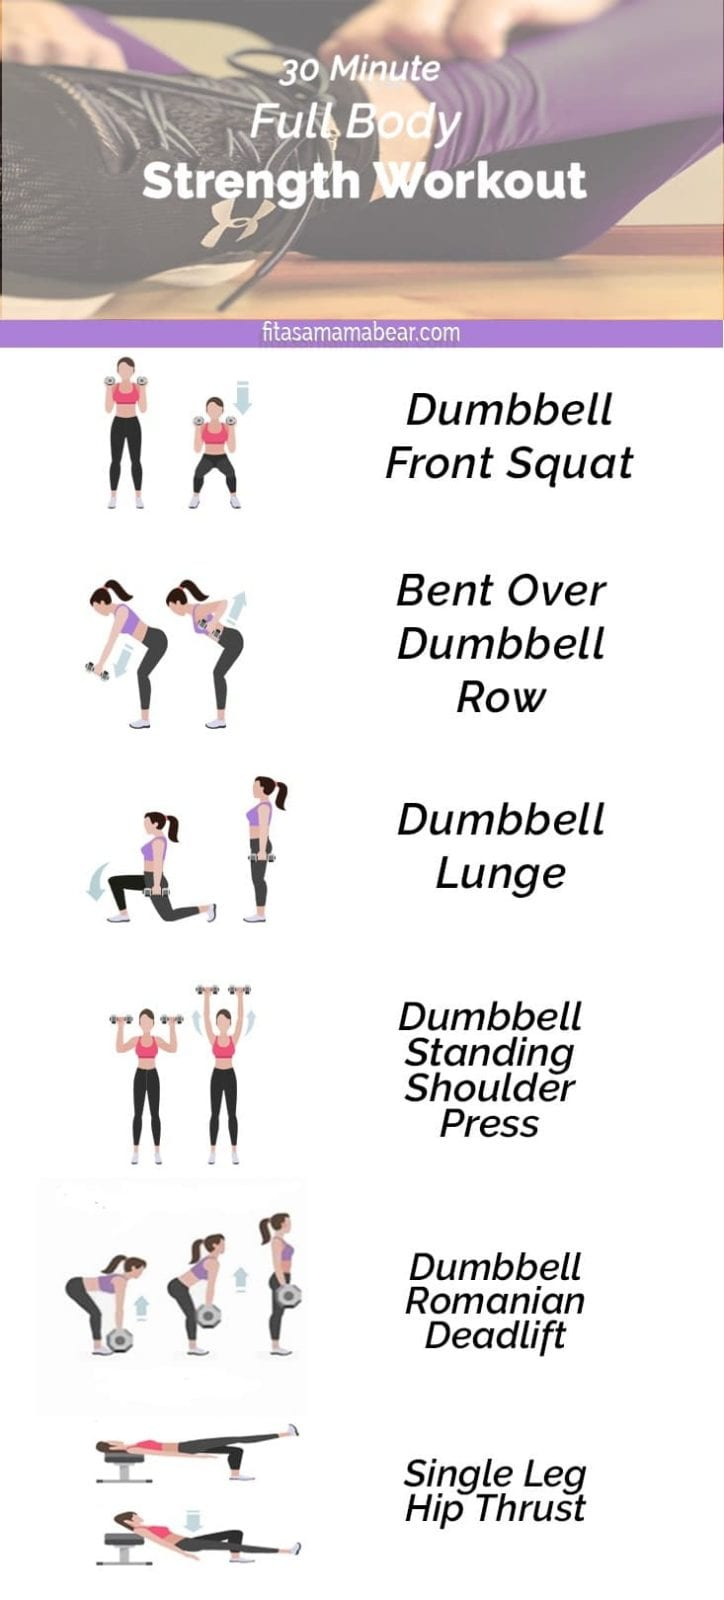 Full body strength workout for moms, dumbbells, fitness, strength, training, exercise, tone, define, heavy lifting